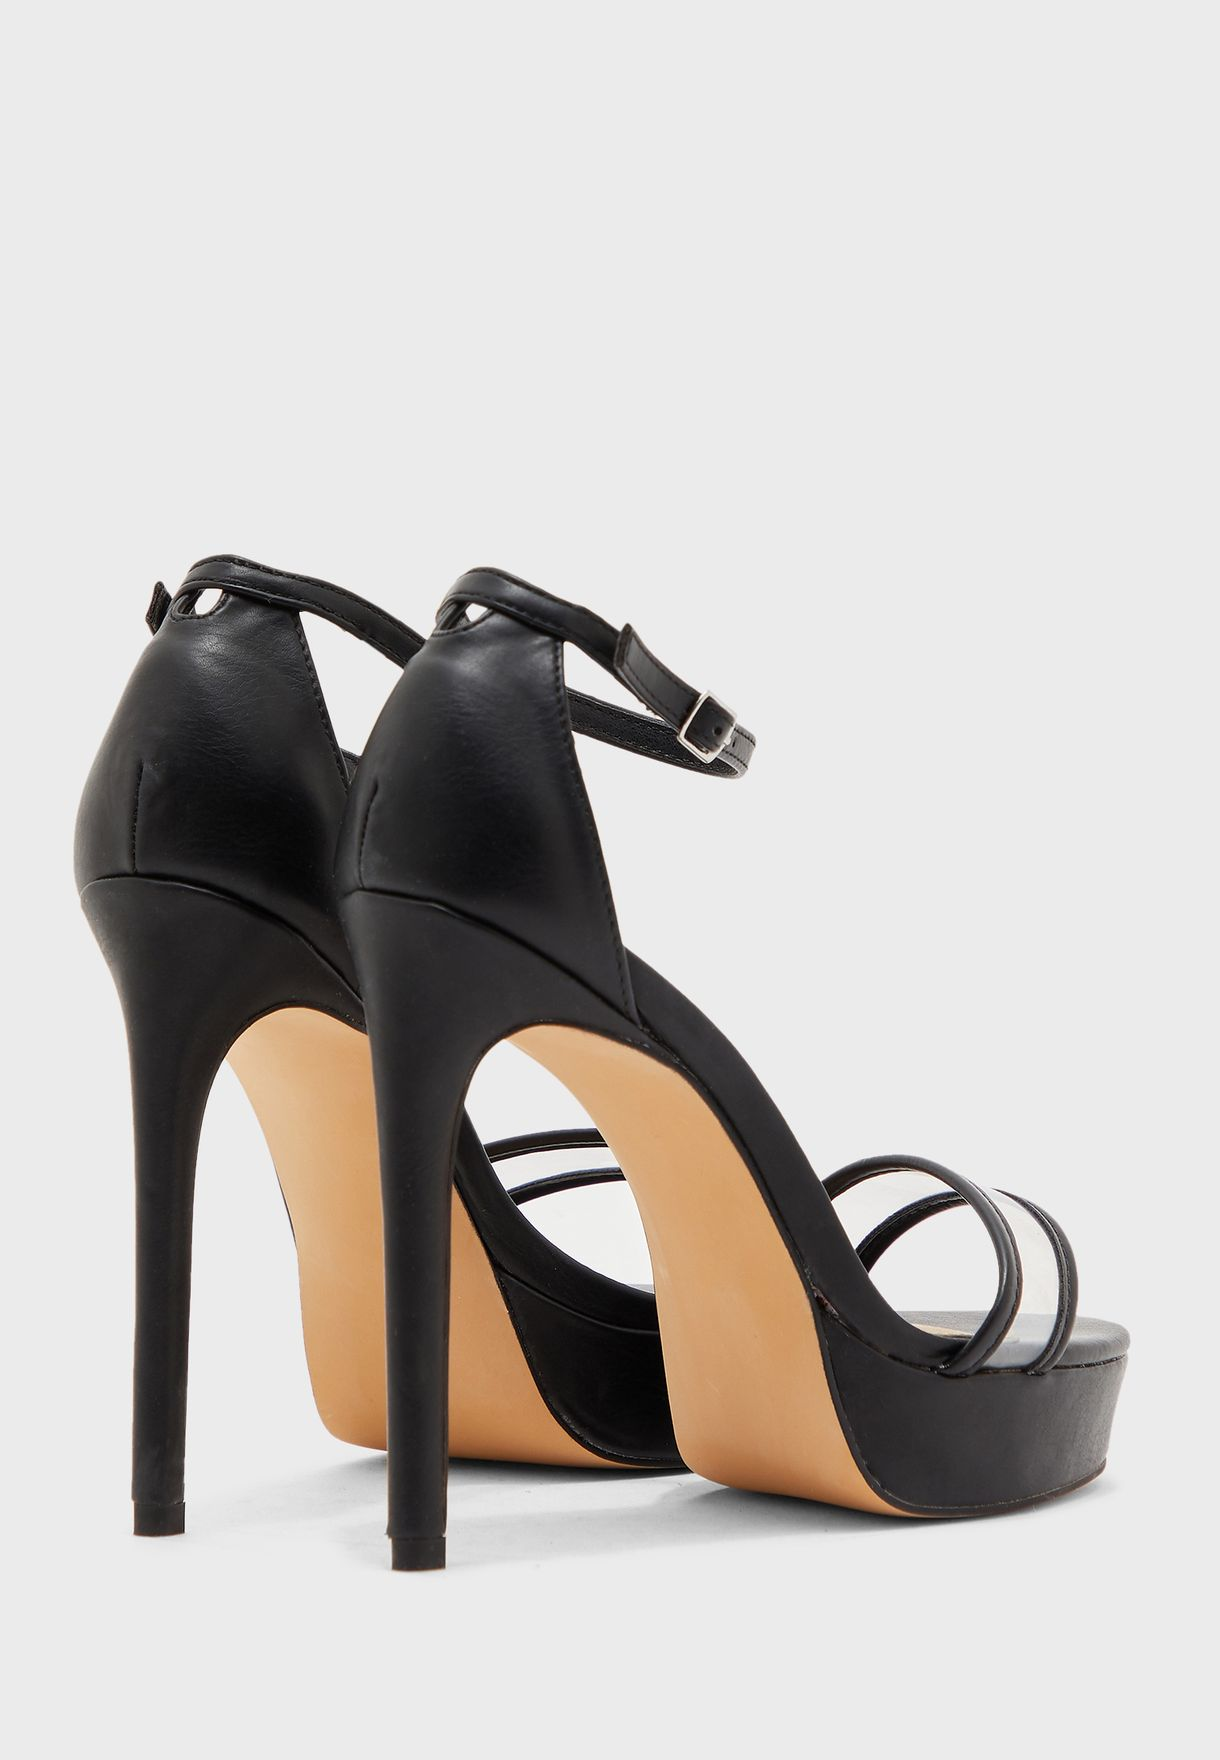 Ankle Strap High Heel Sandal